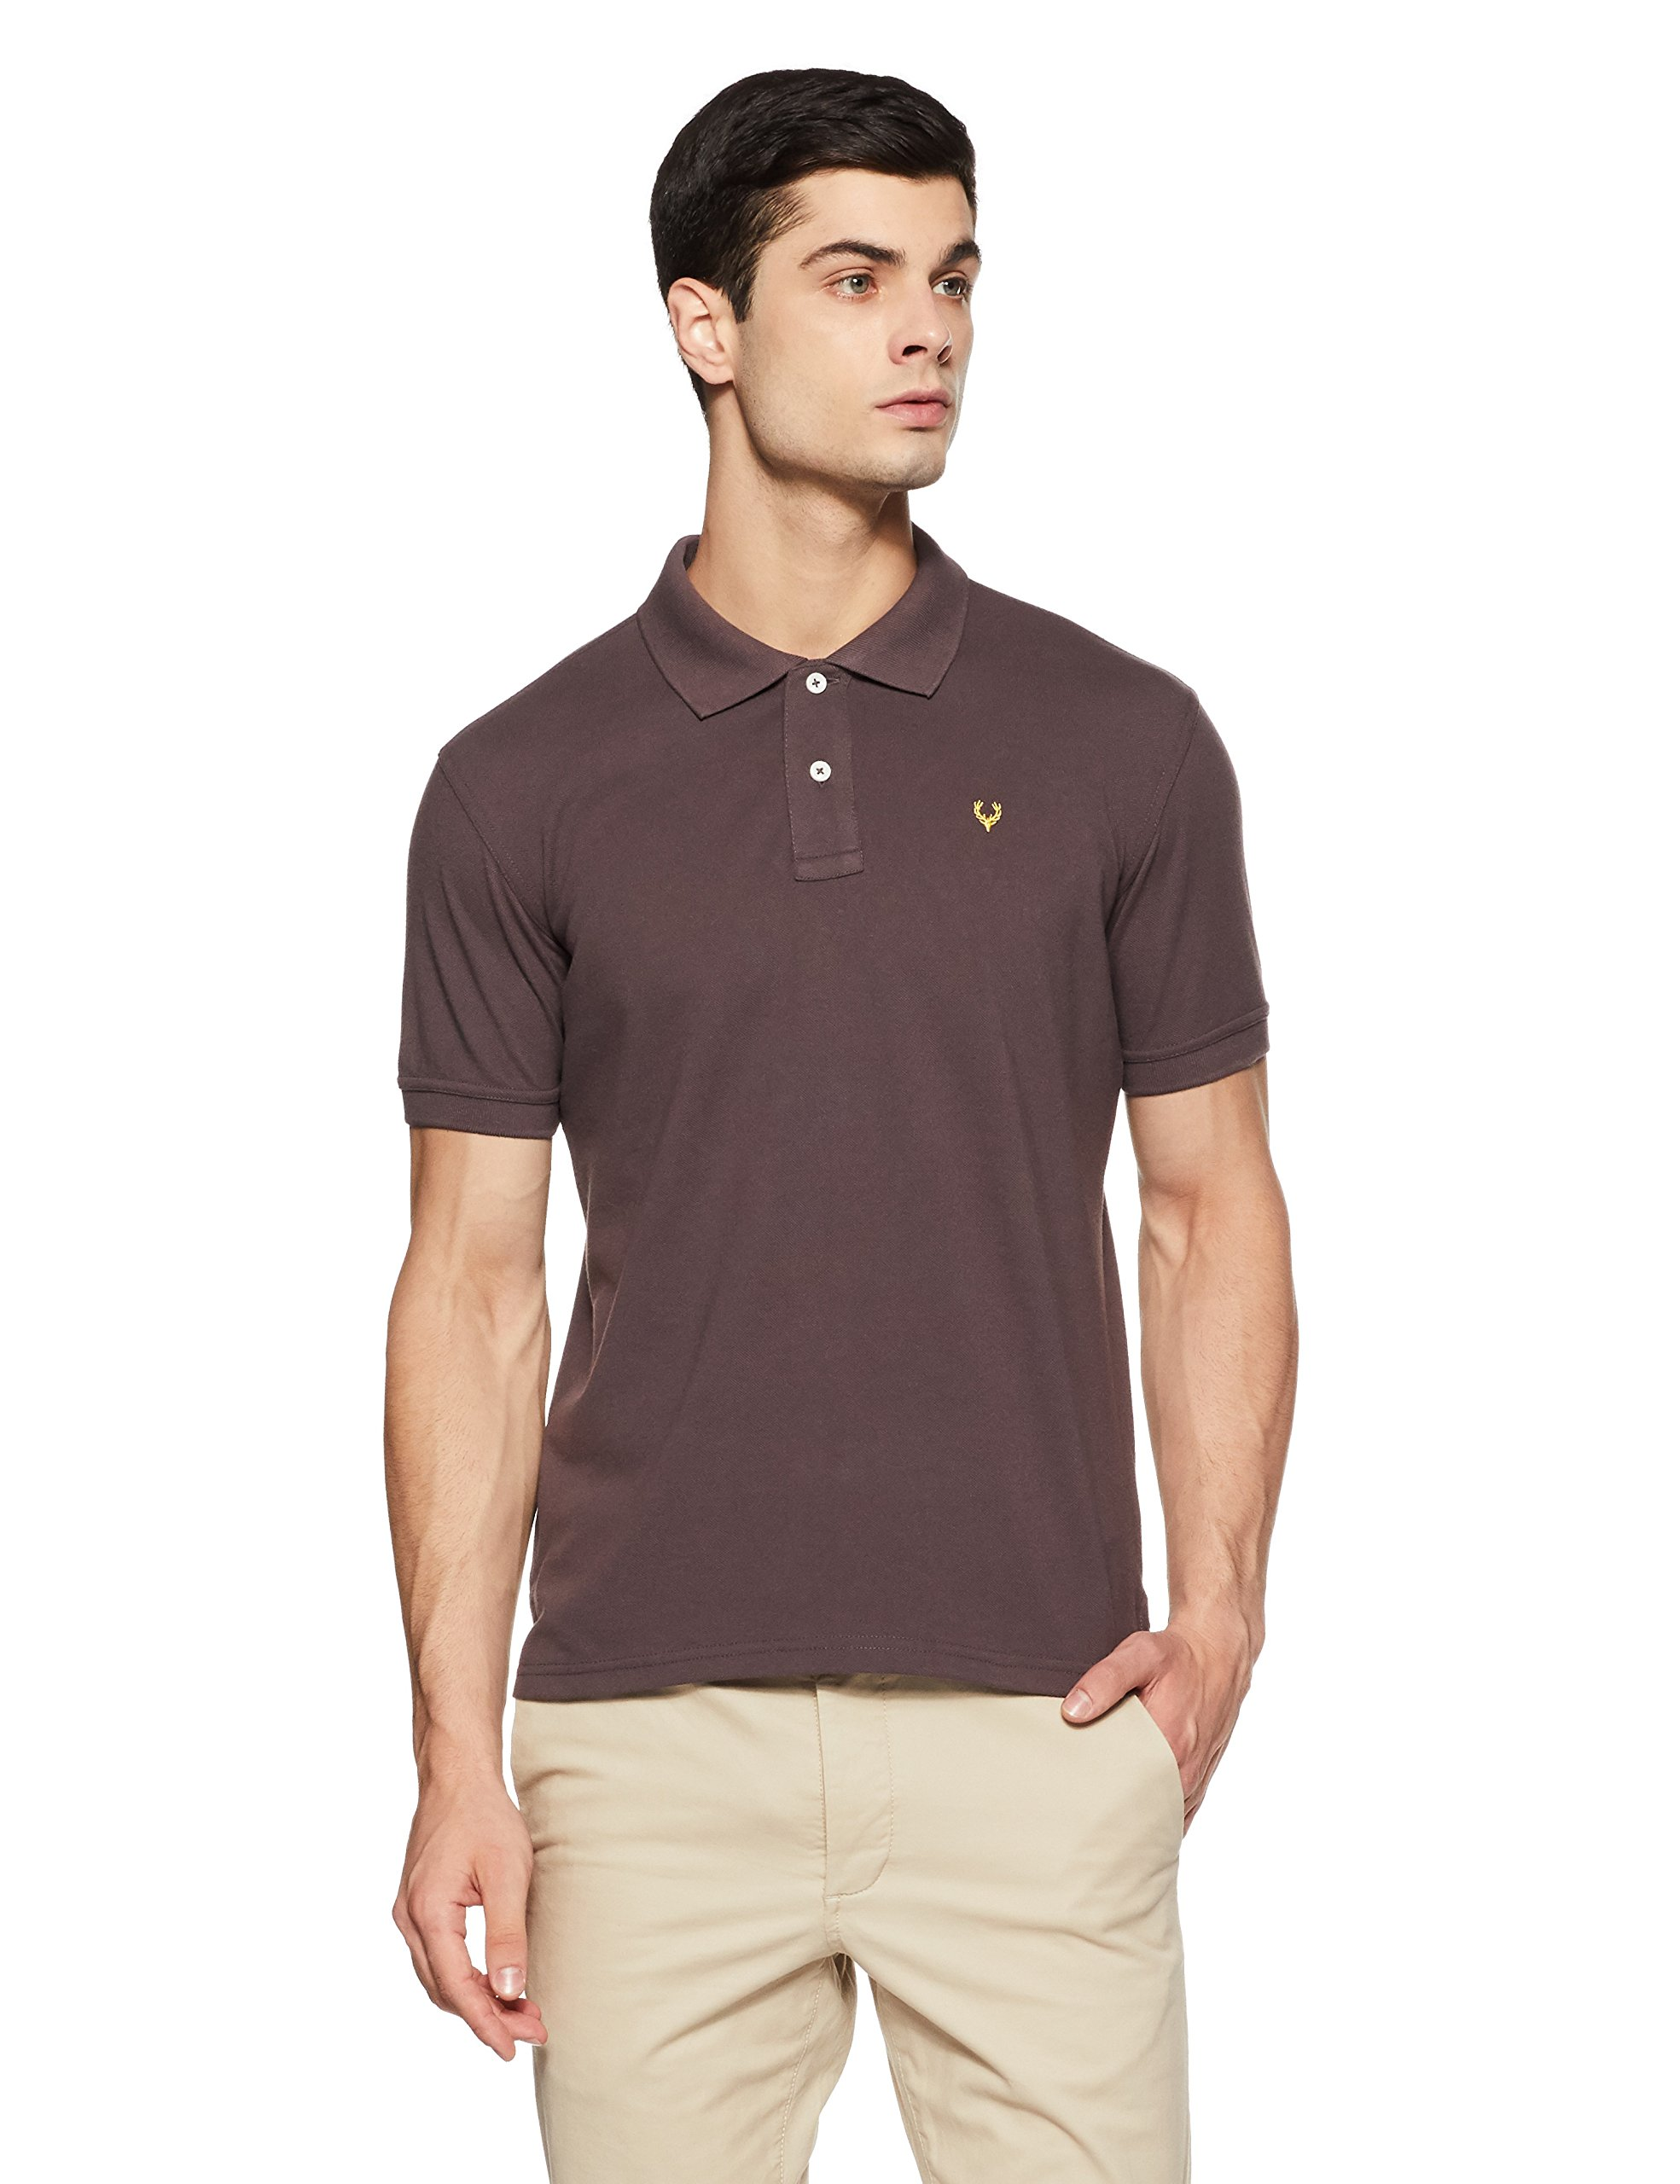 Allen Solly Men's Polo product image